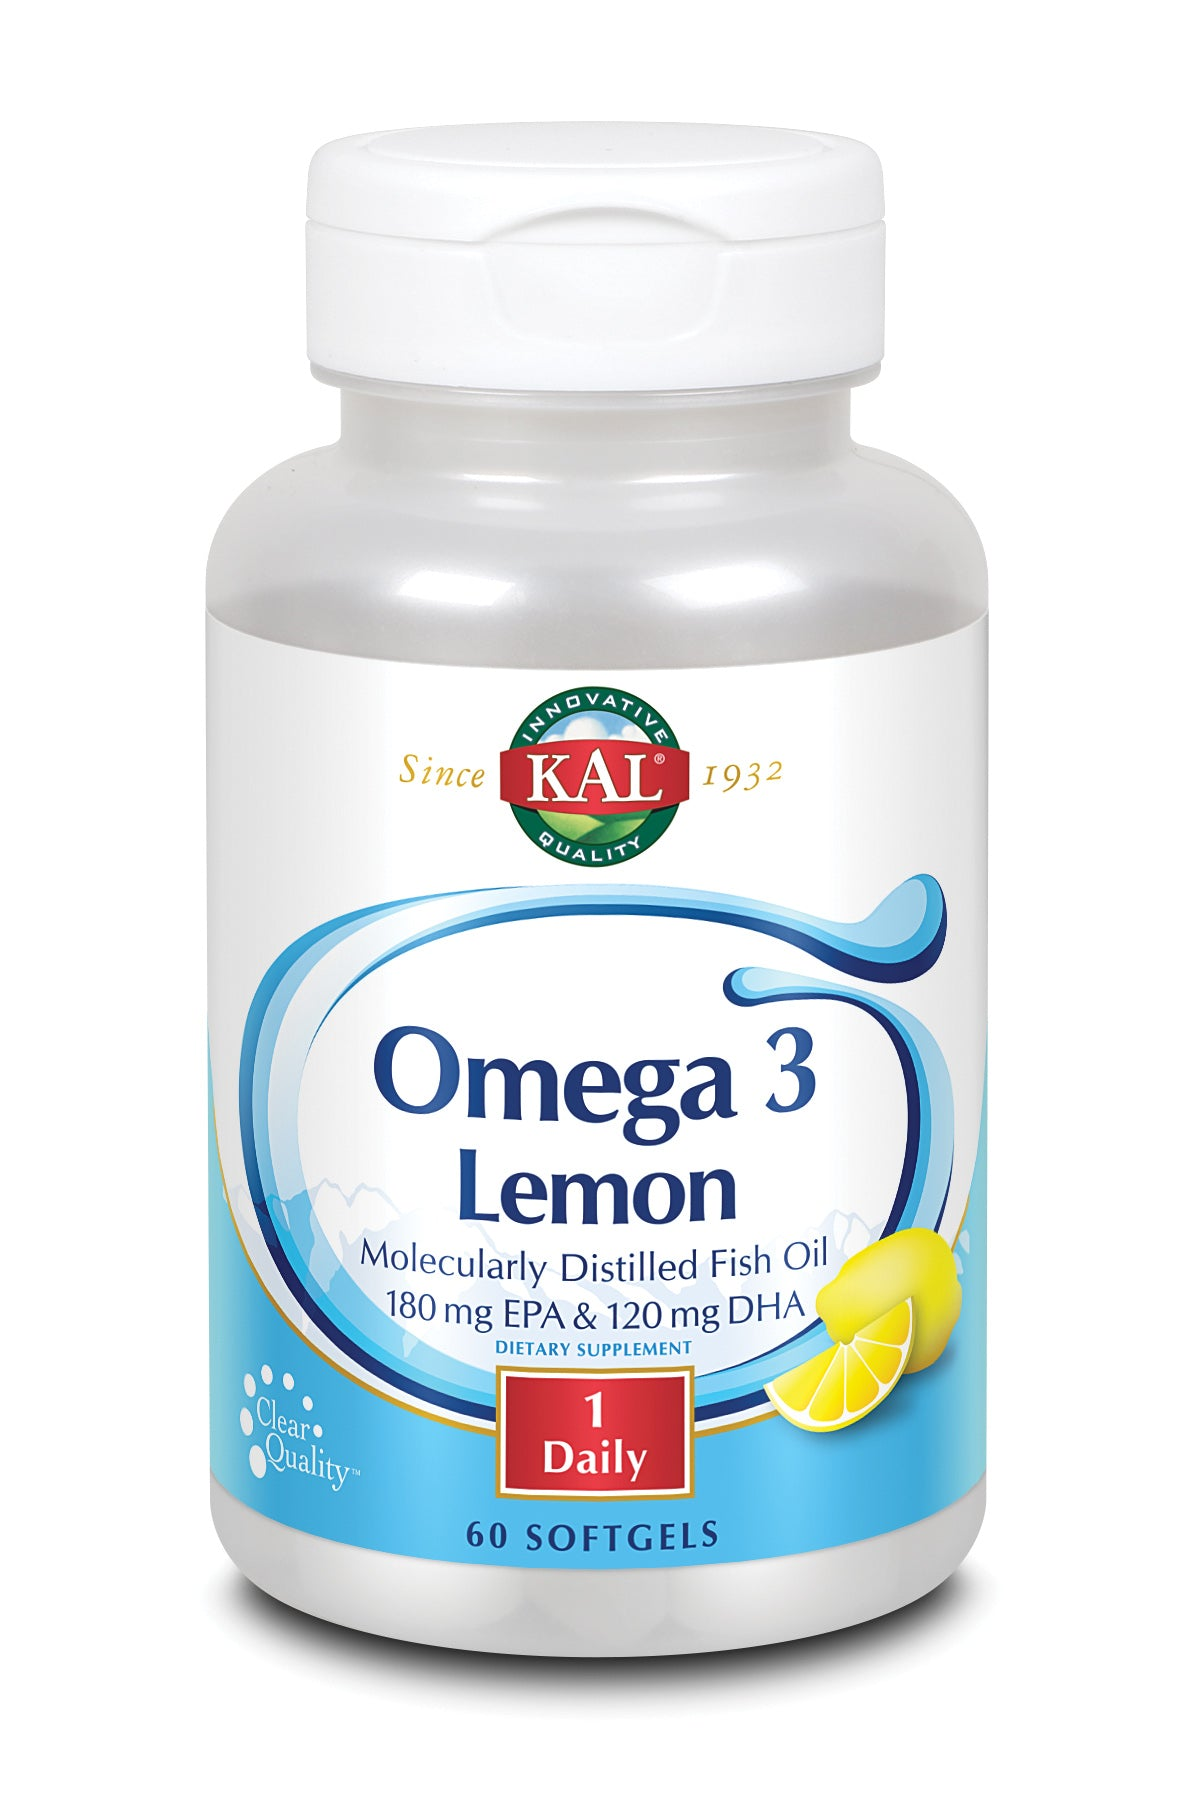 Omega 3 Lemon Softgels 1070mg 60ct - 60ct